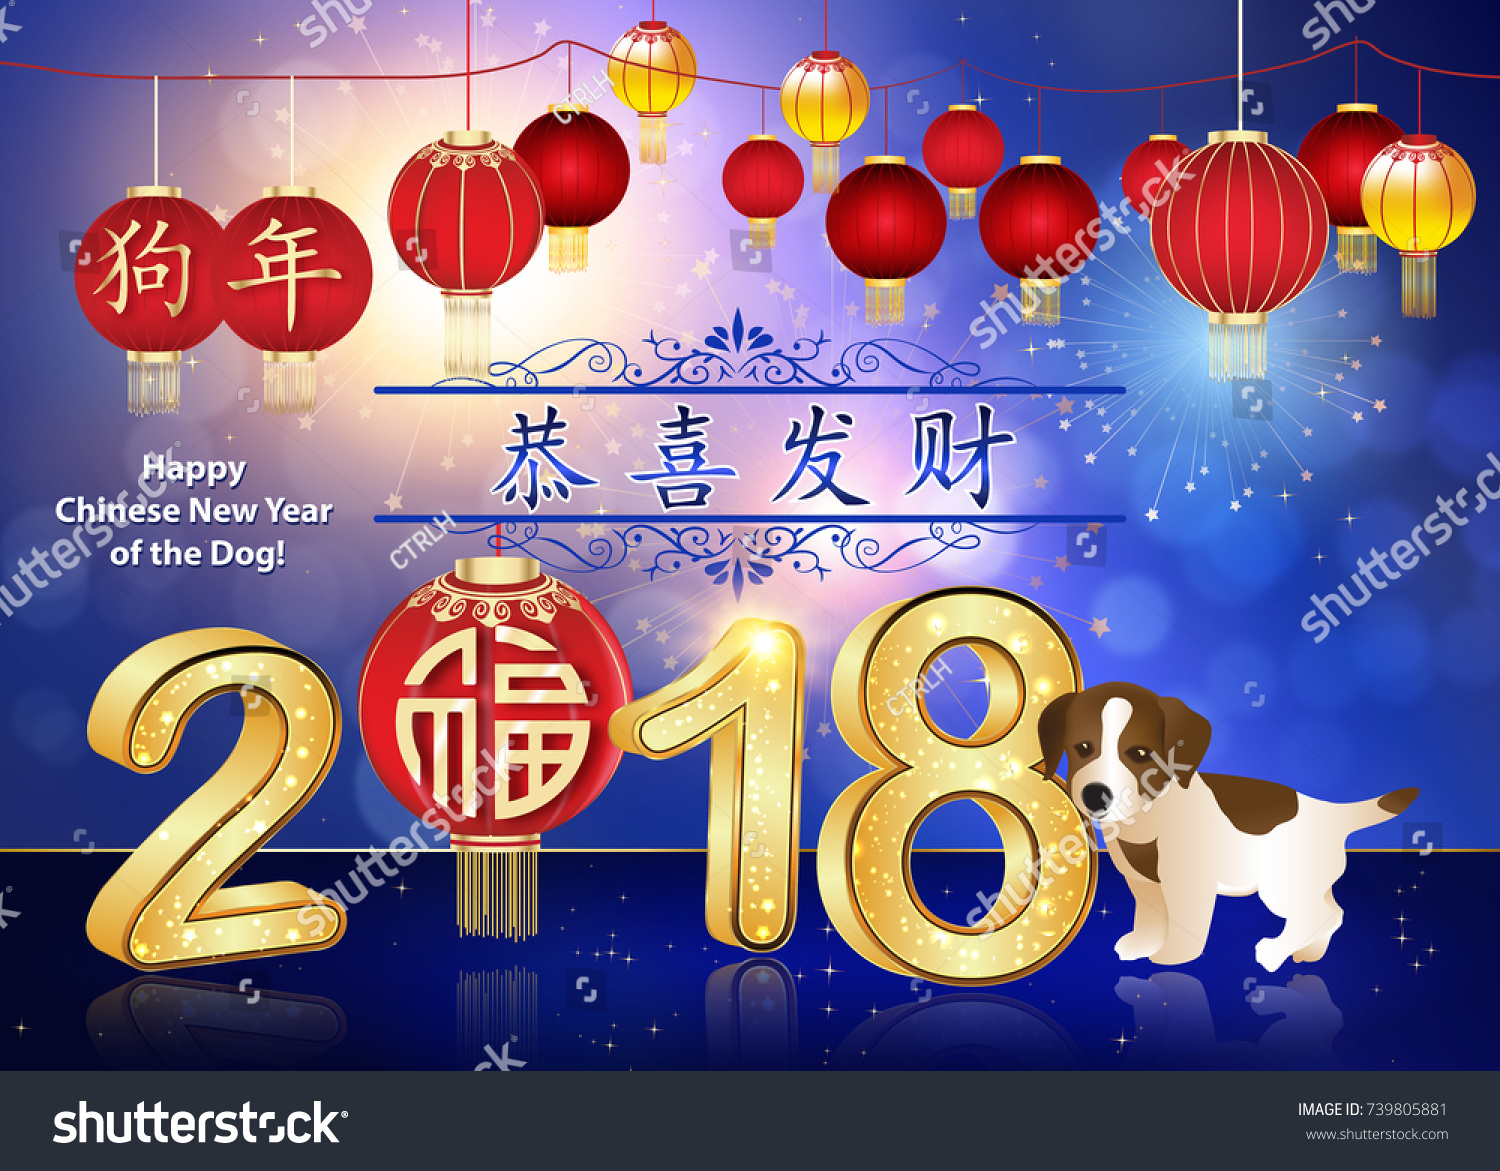 greeting card fir the chinese new year of the dog 2018 text translation congratulations